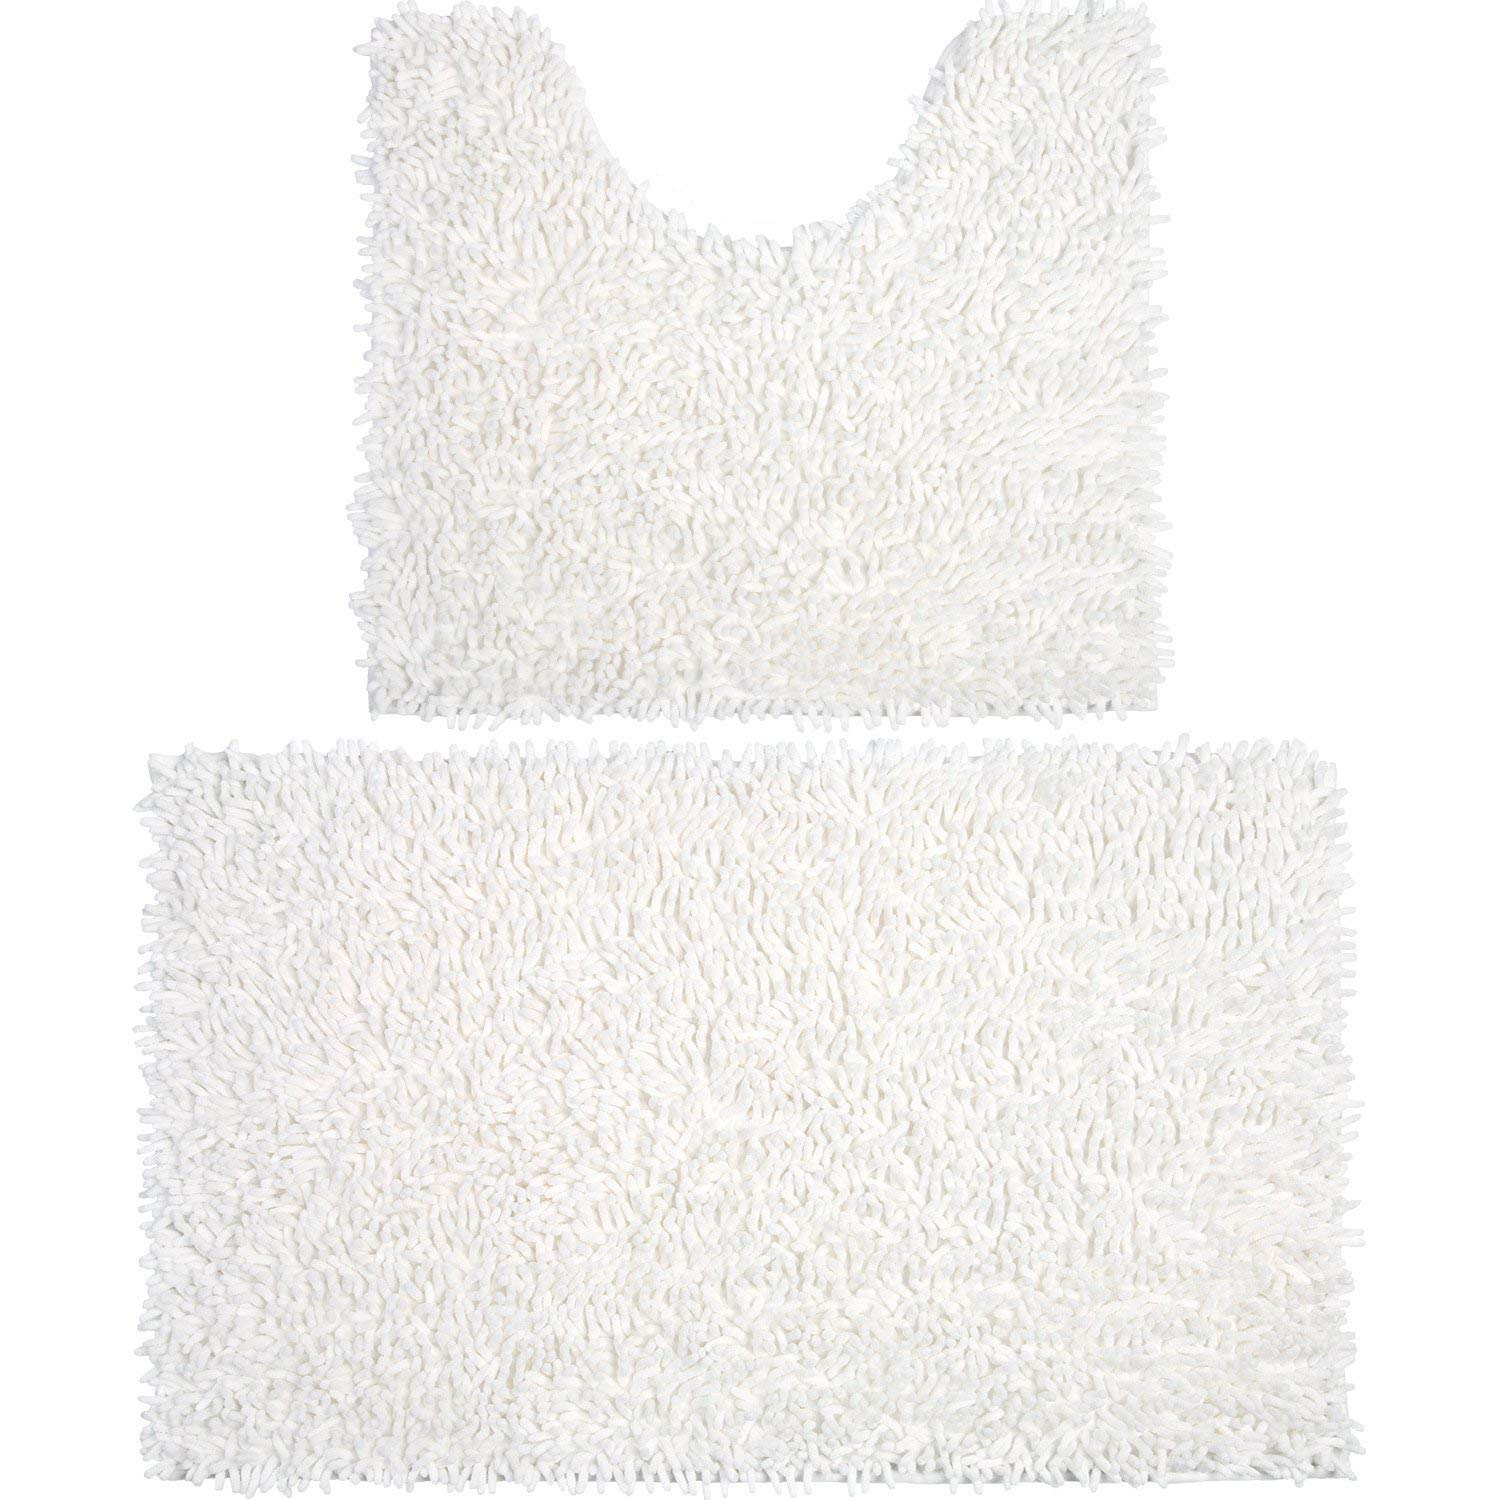 Vdomus Microfiber Bathroom Rugs Combo, 2 Piece Rug Set, Includes 20 x 32 Soft Shaggy Bath Mat and U-Shaped Toilet Floor Rug, Machine Washable(Beige) VMHKBM041202